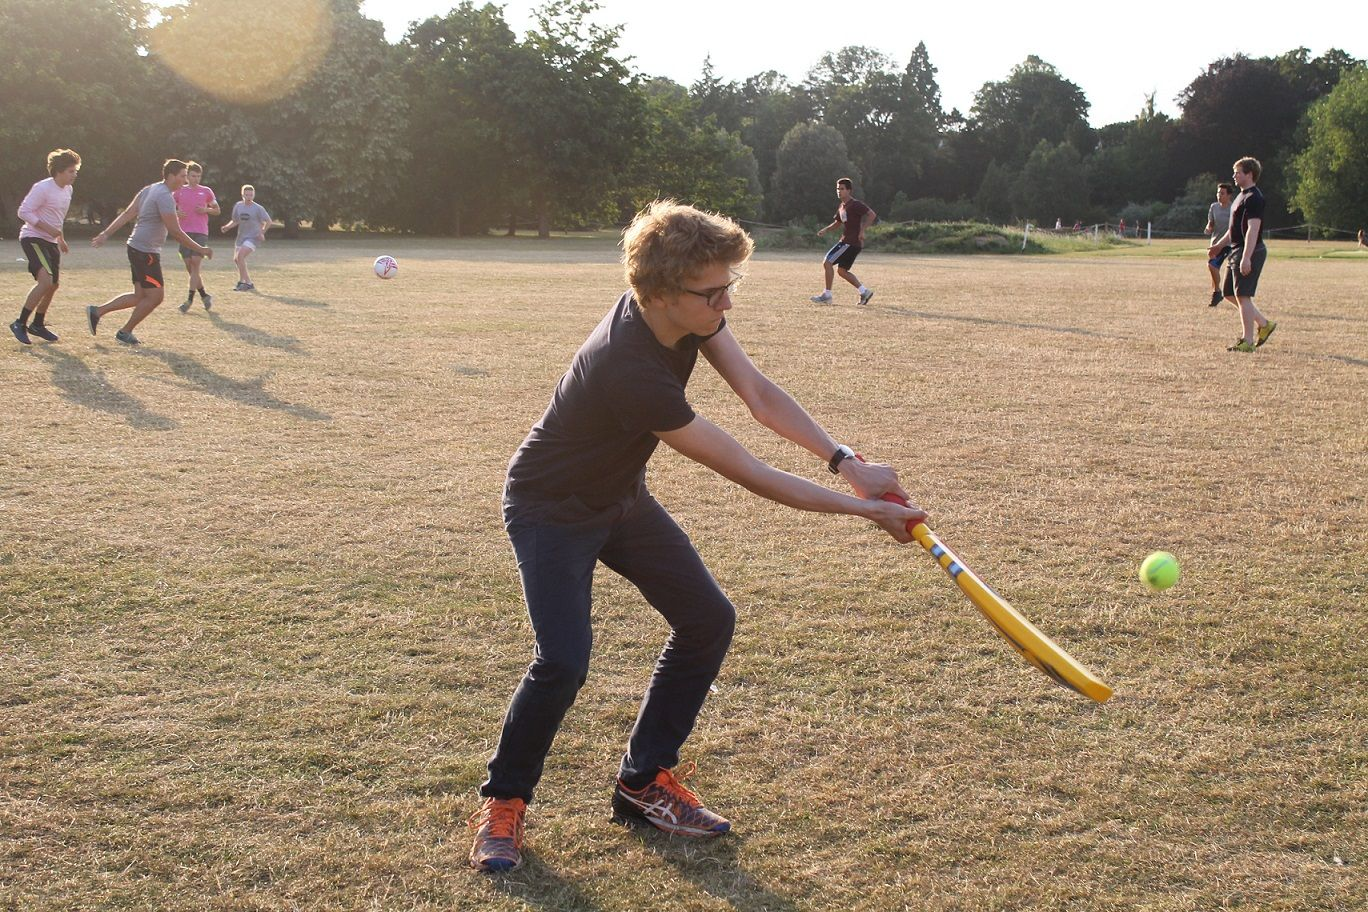 Student enjoying sports at our Summer School in Oxford